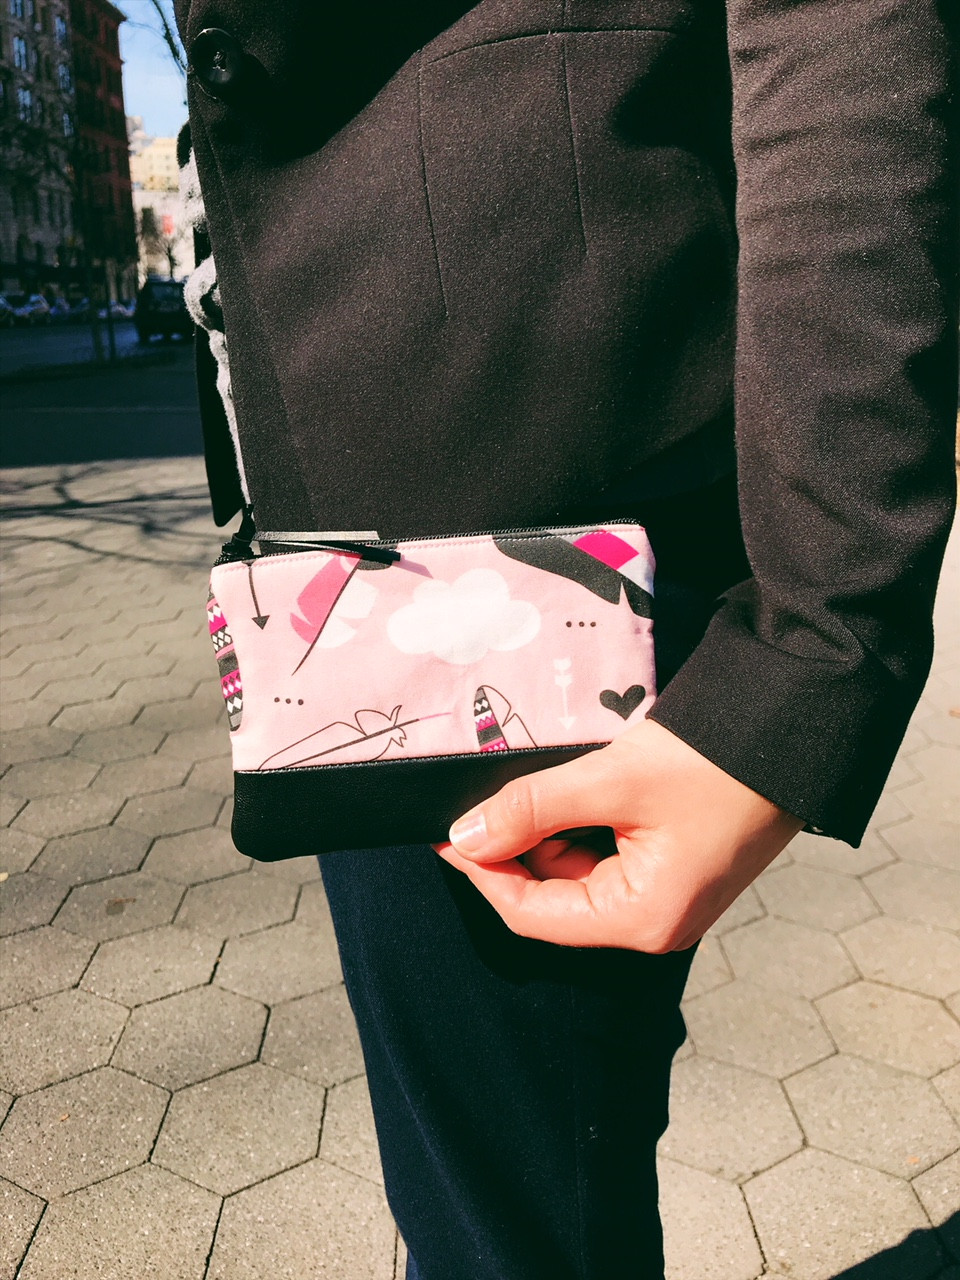 Women's Coin Purse - Pink and Black Cloud and Arrow Print